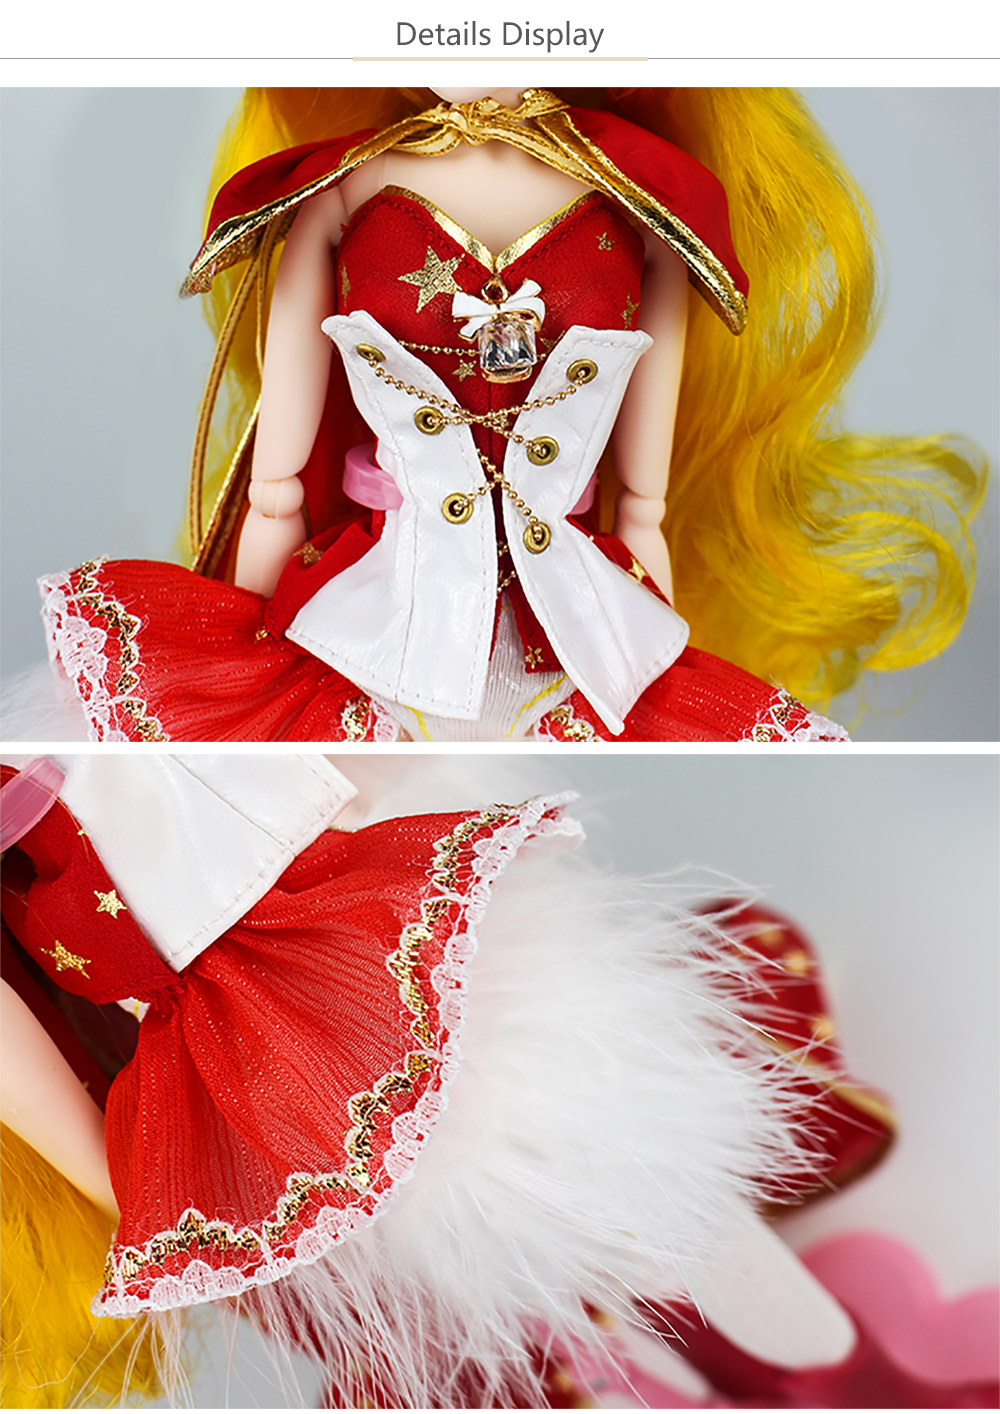 MMG-Girl-fortune-days-BJD-doll-12-constellations-LEO-with-cool-red-outfit-boots-tail-stand (4)